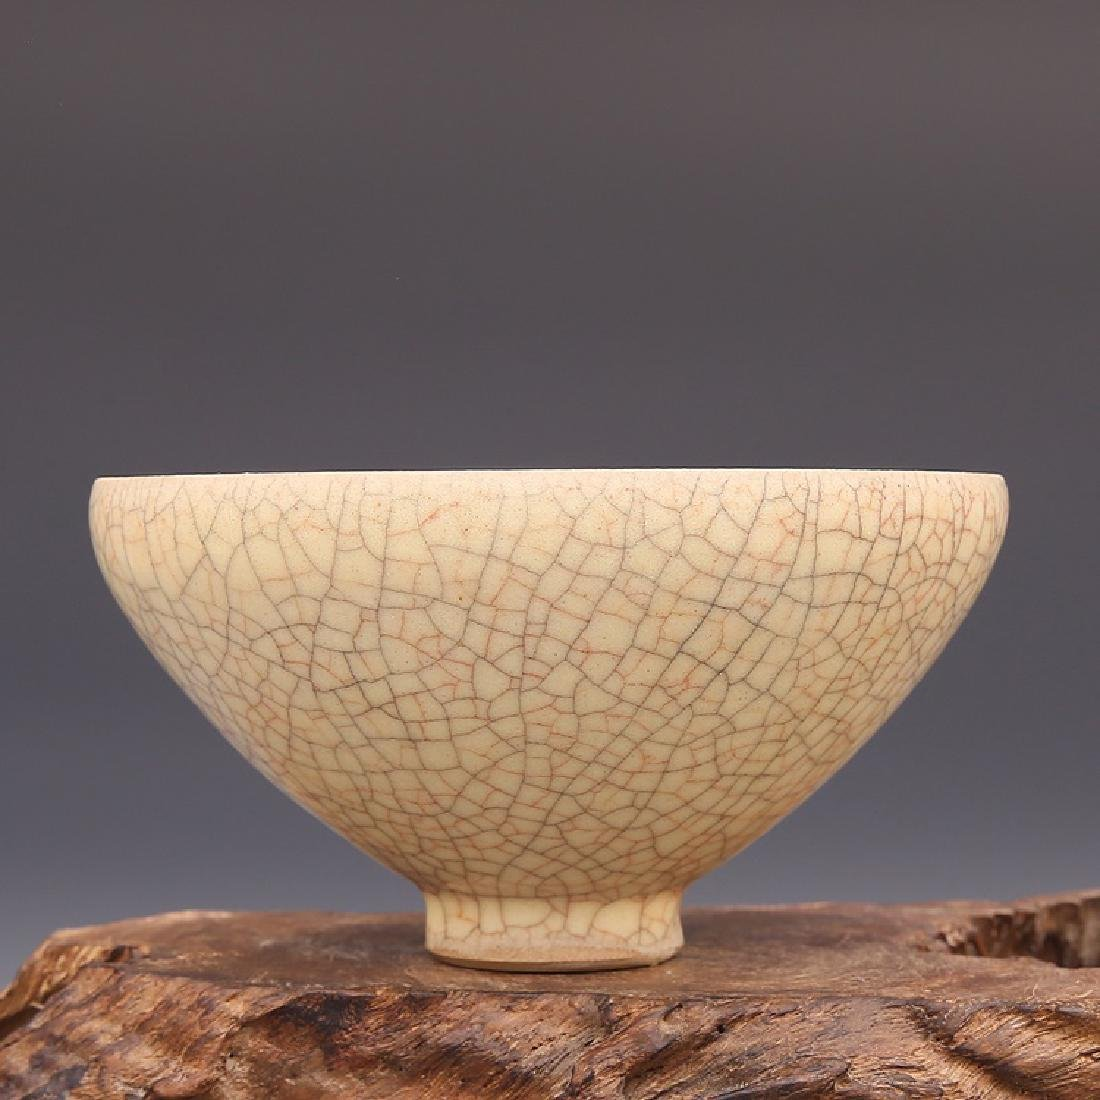 Chinese Song Dynasty Ge Ware Cracked Pattern Porcelain